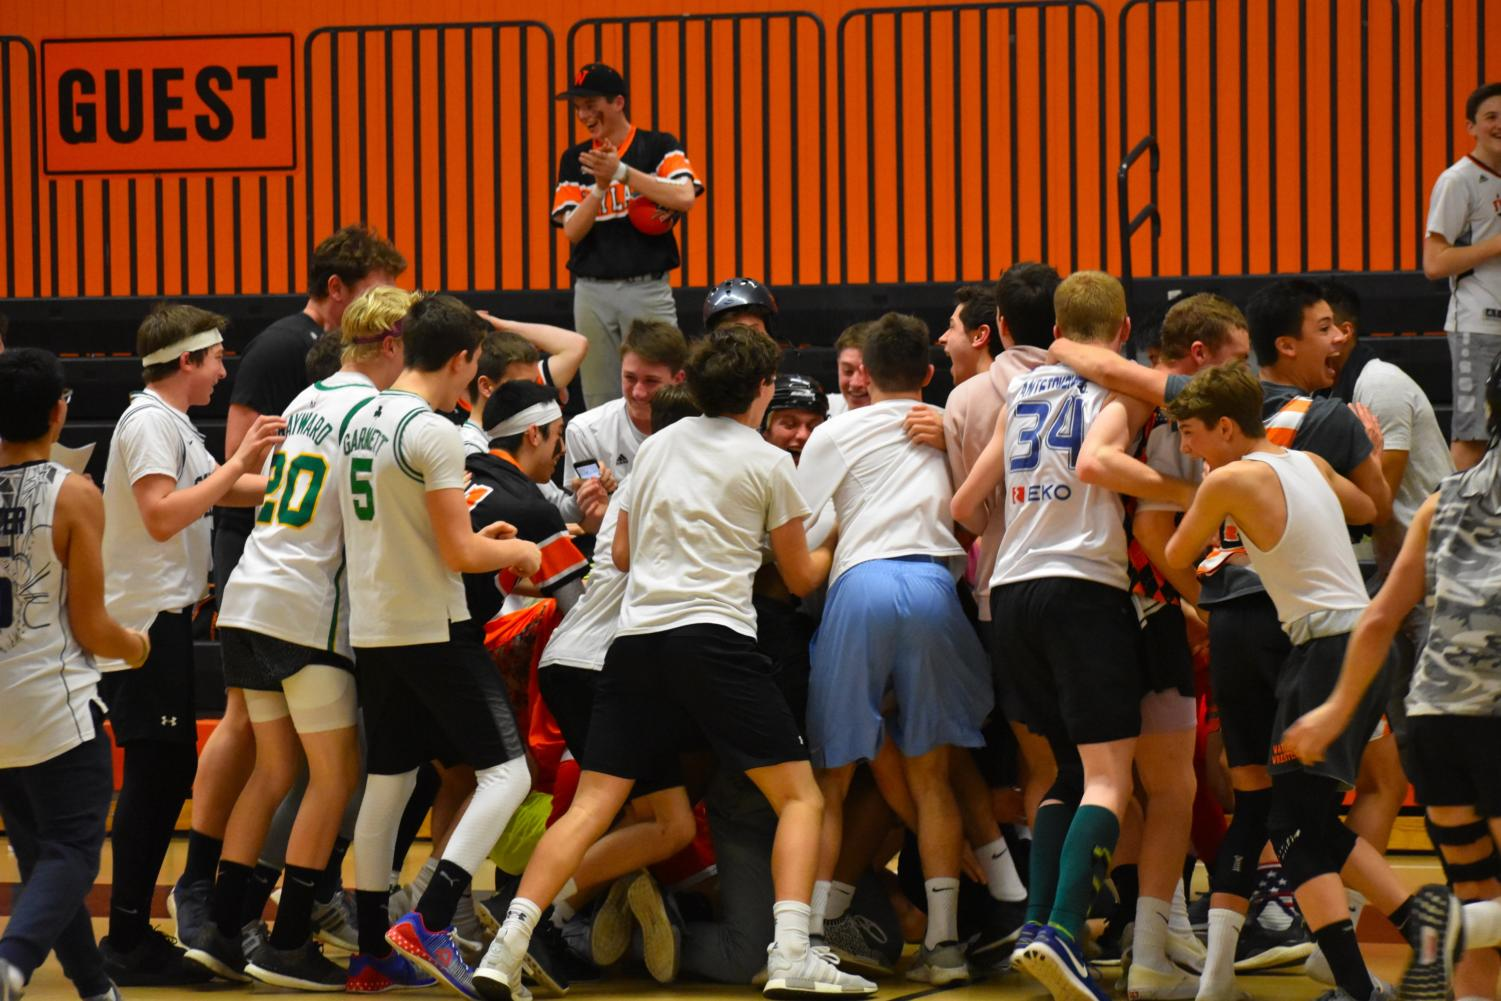 Students run onto the court and form a mosh pit after freshmen team